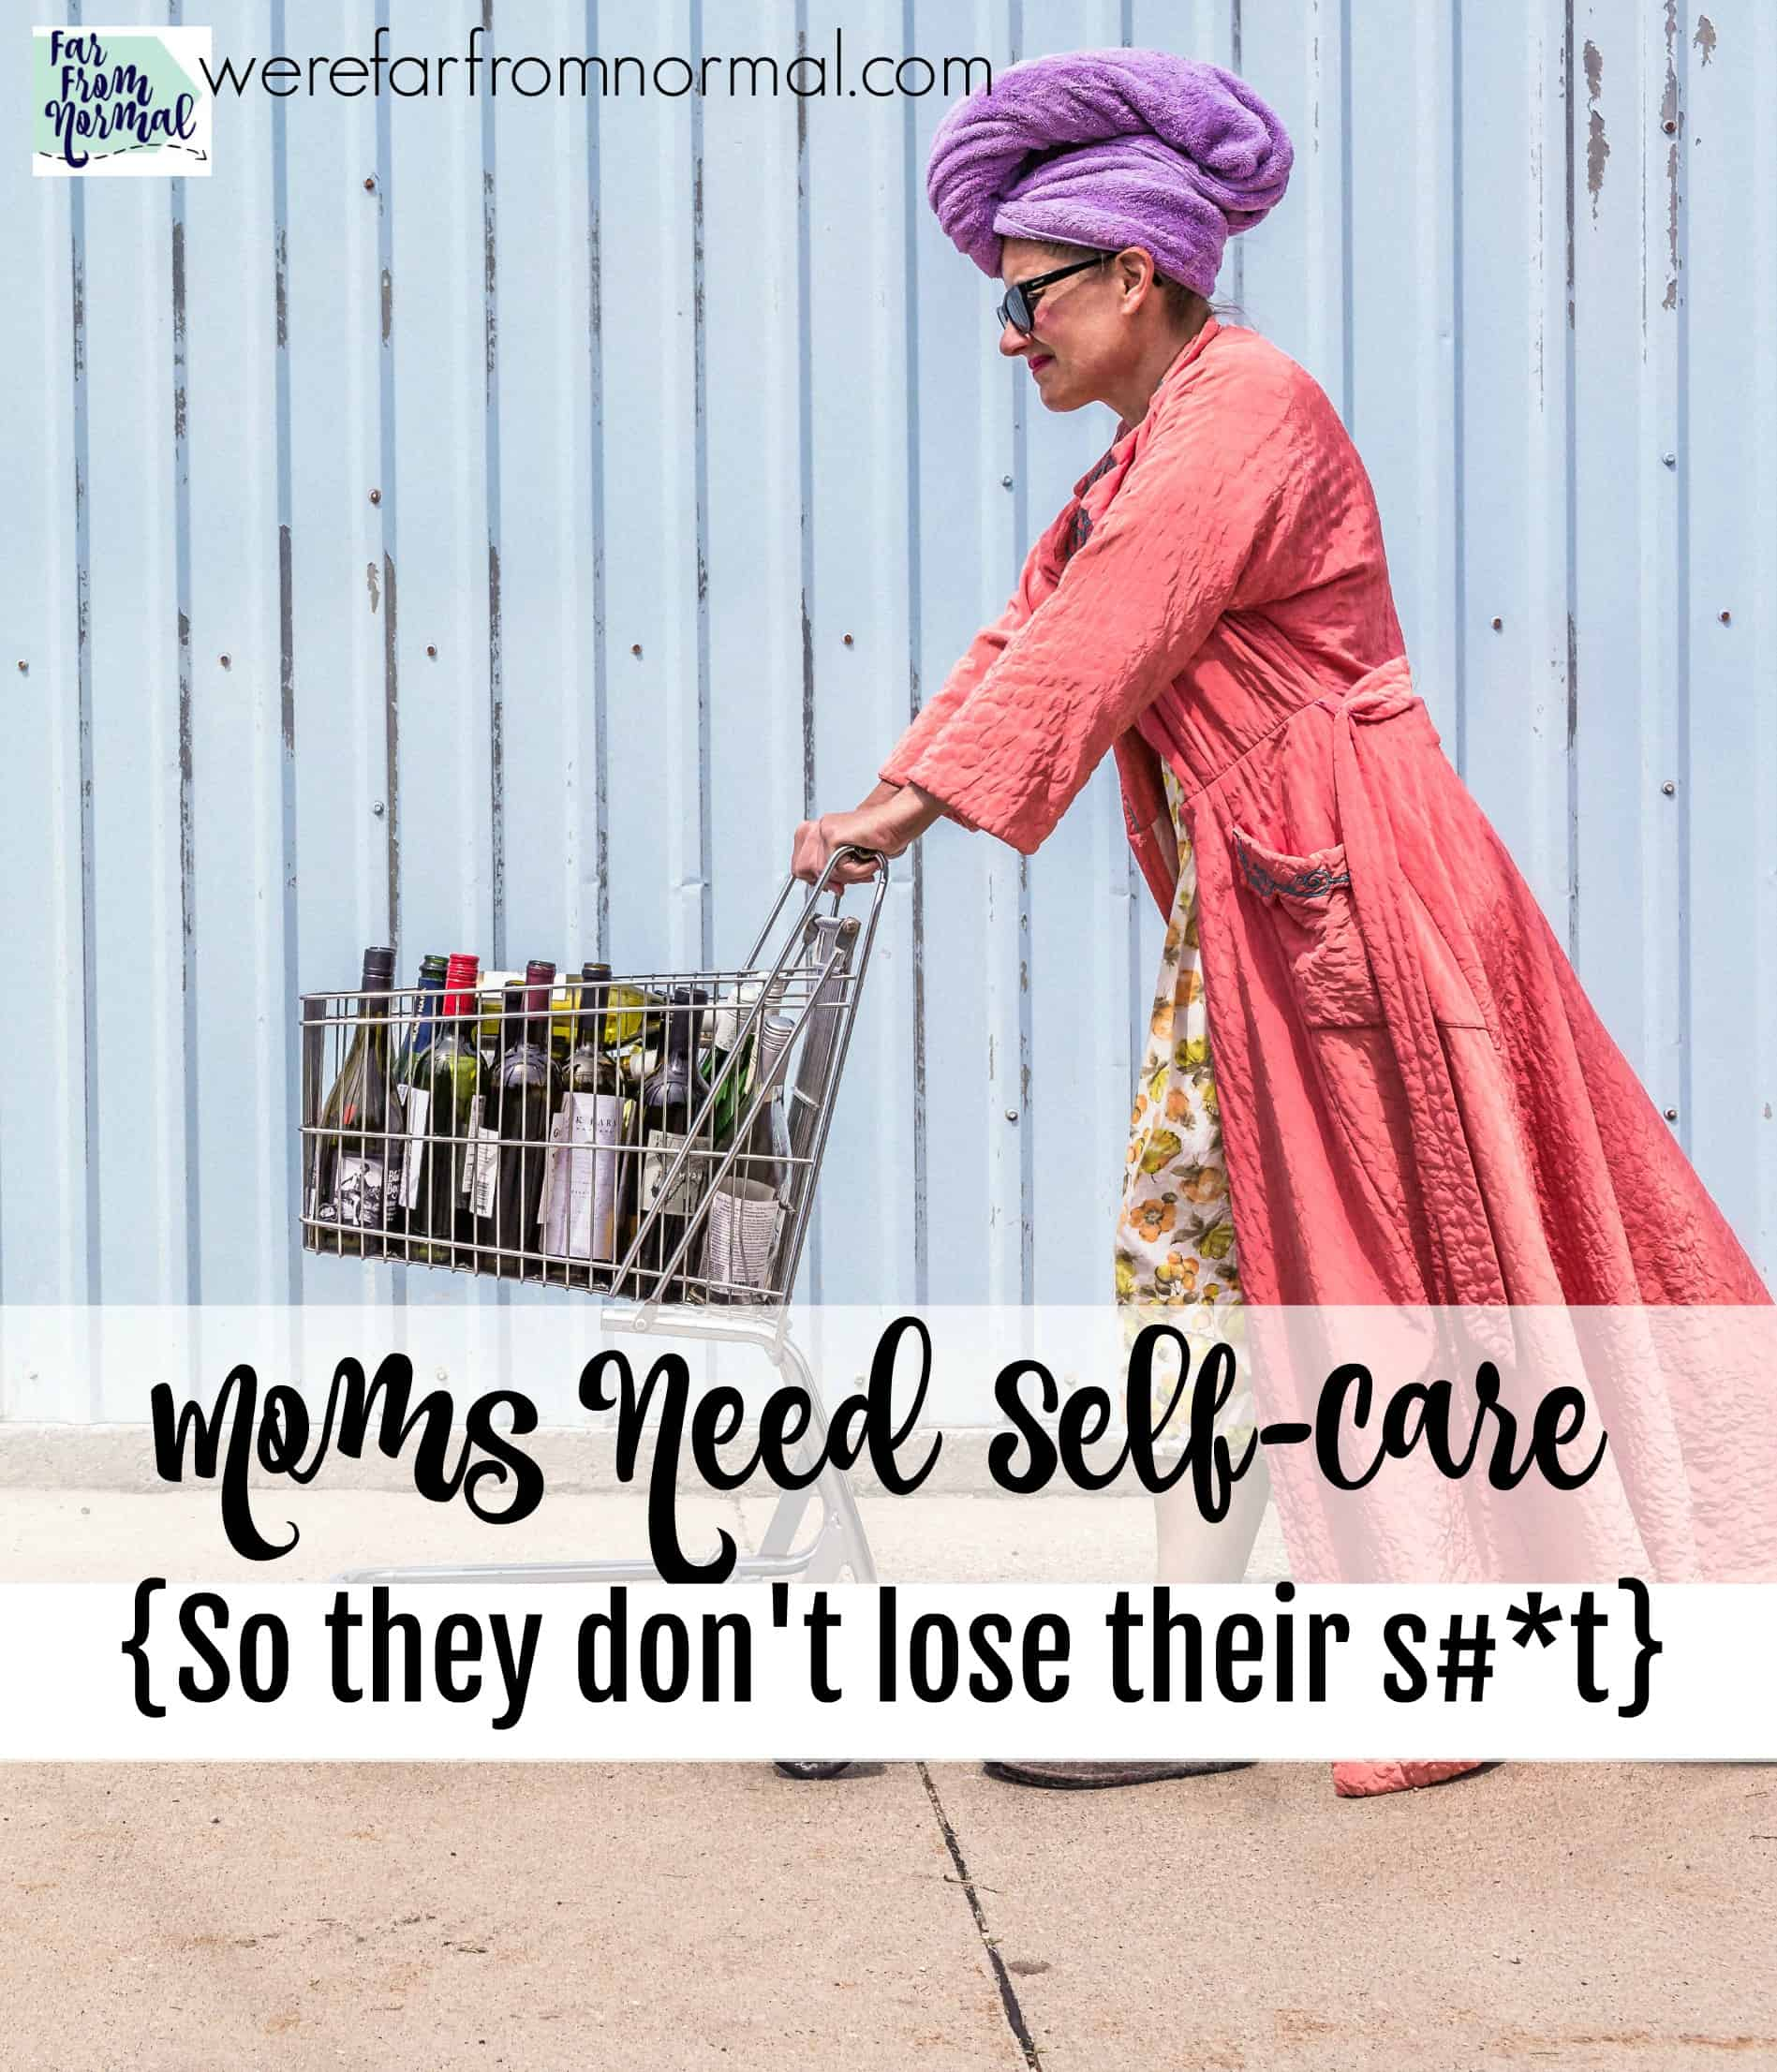 Moms Need Self-Care So They Don't Lose Their S#*t!